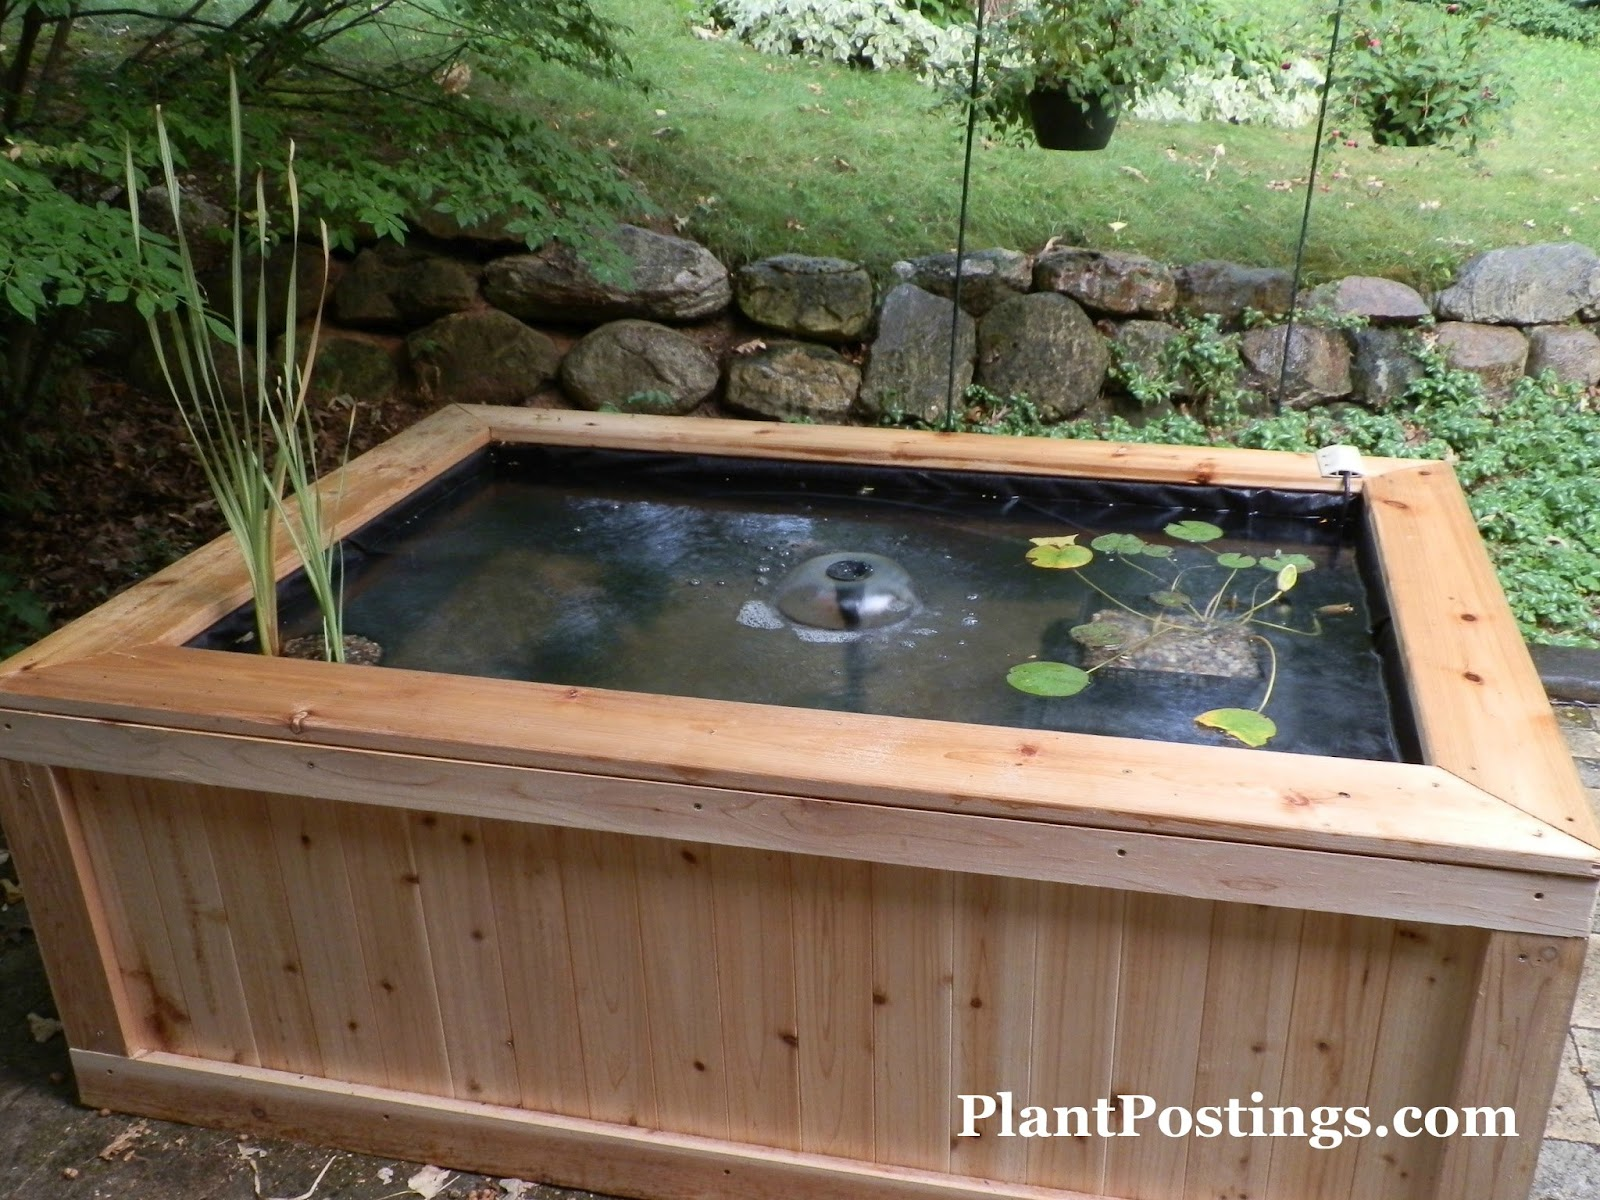 Plantpostings how to make an above ground pond for Garden pond do you need a pump